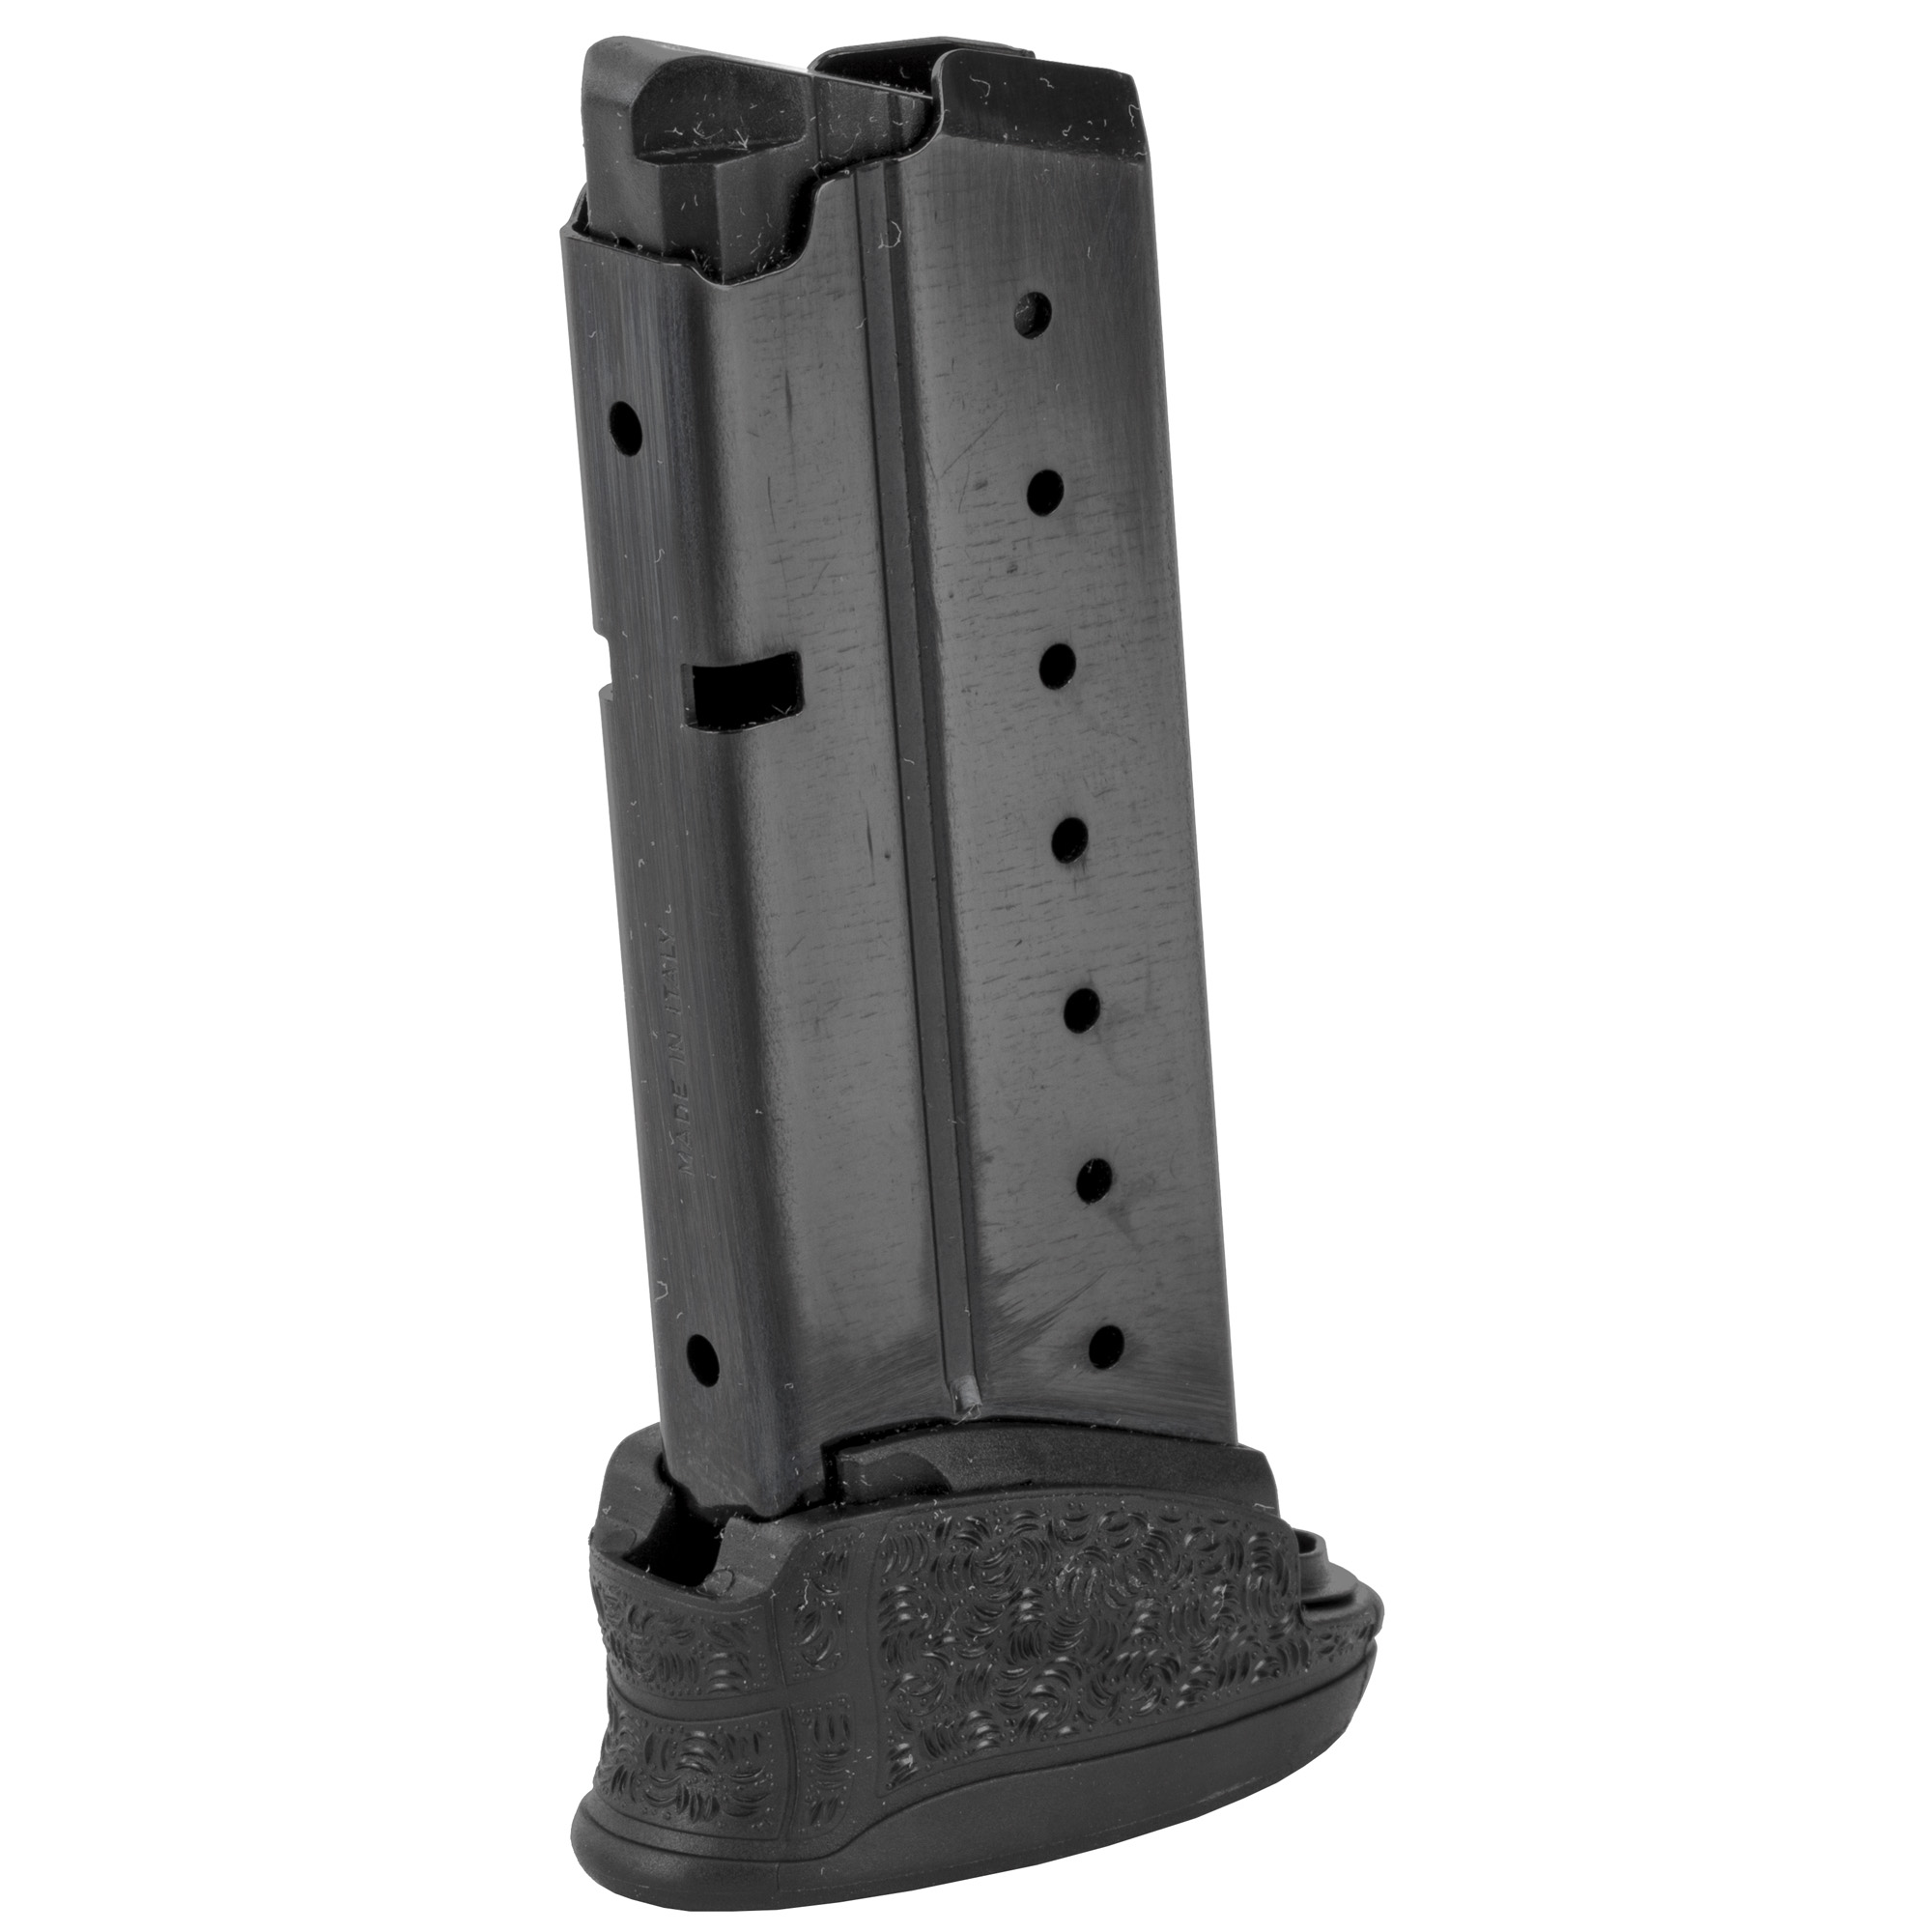 """This magazine is made to Walther specifications and tolerances using high quality materials that provide perfect fit"""" durability and reliability."""